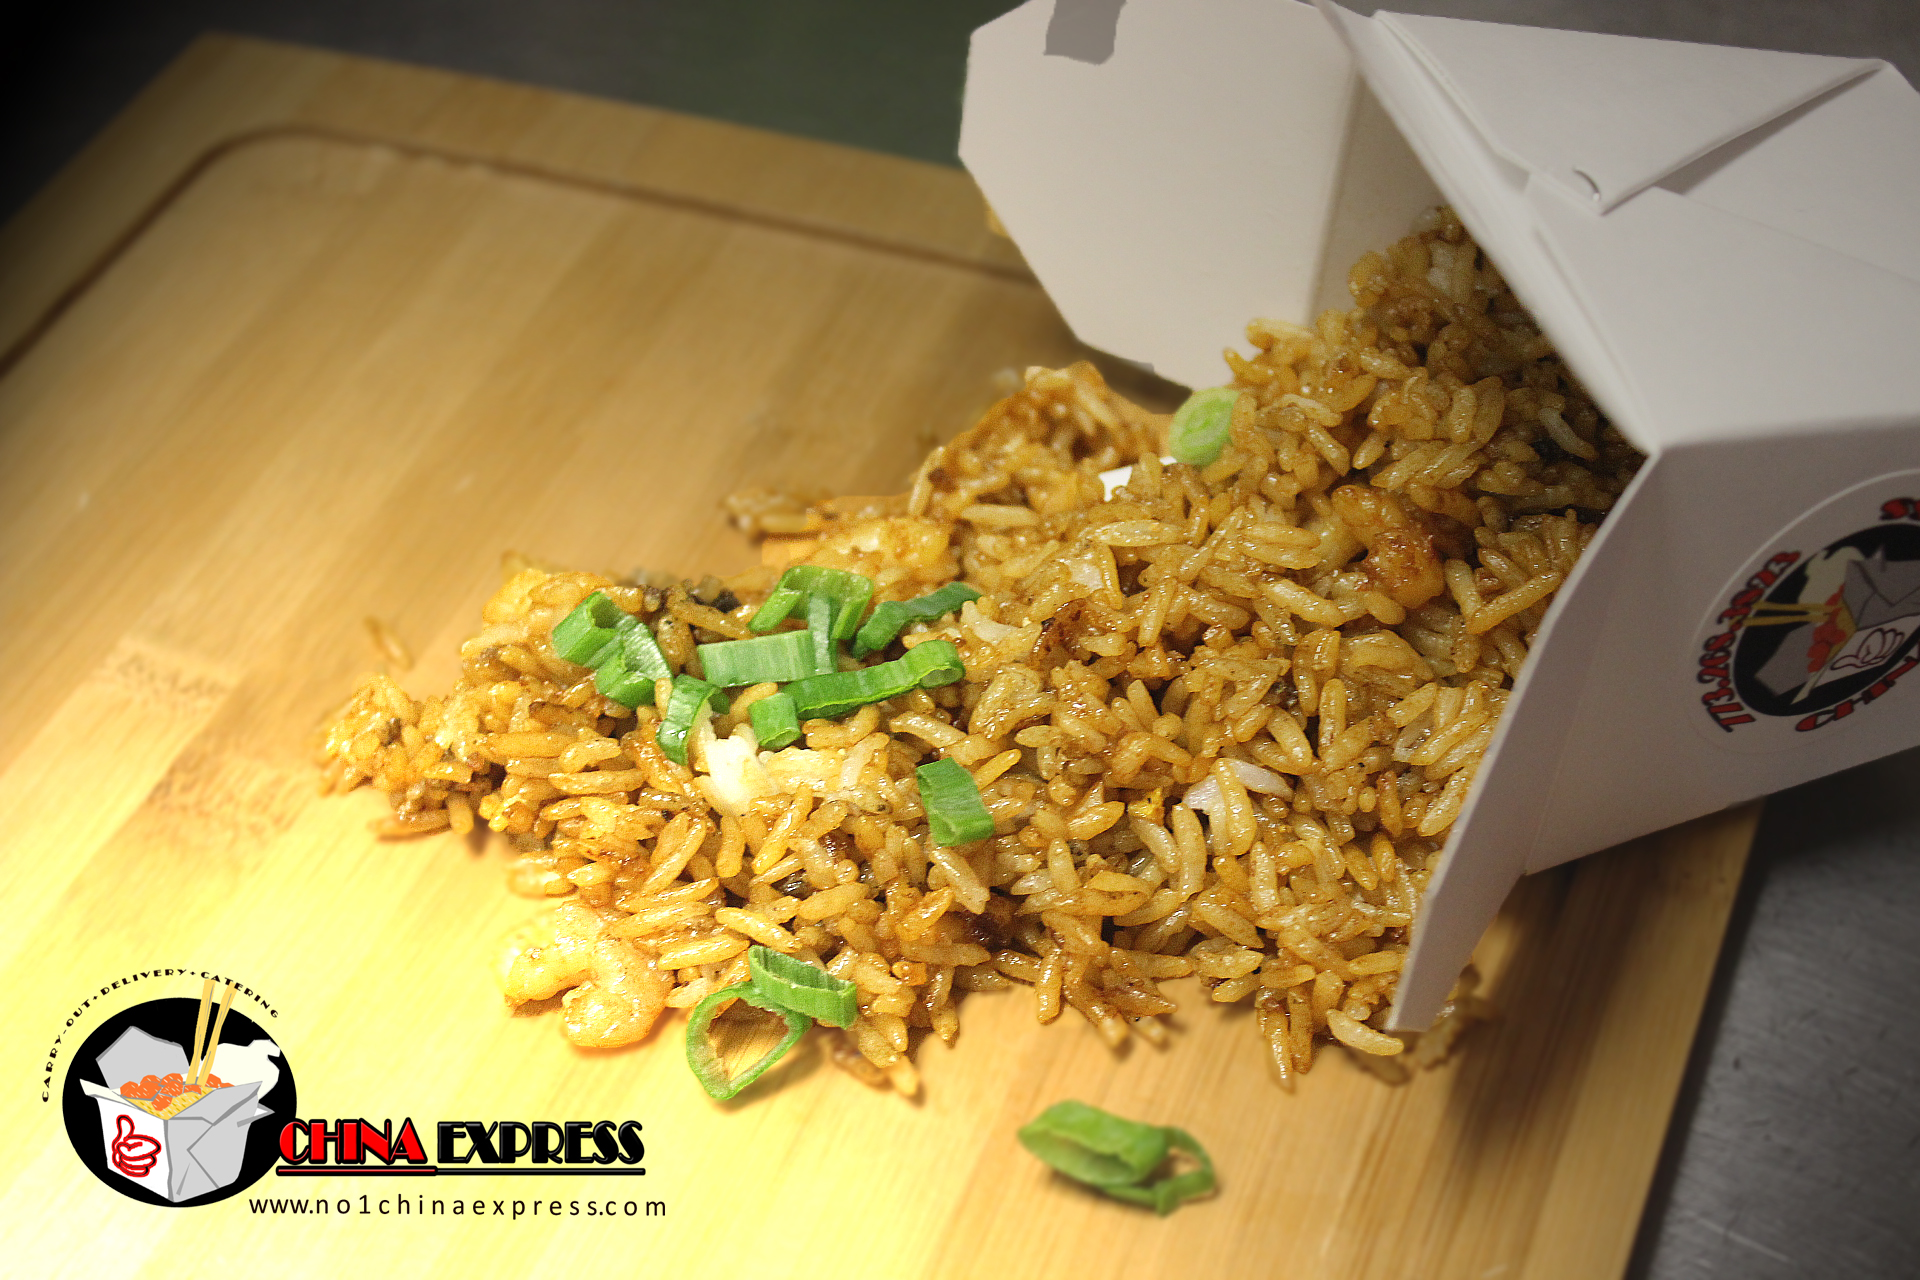 (L) Fried Rice Image